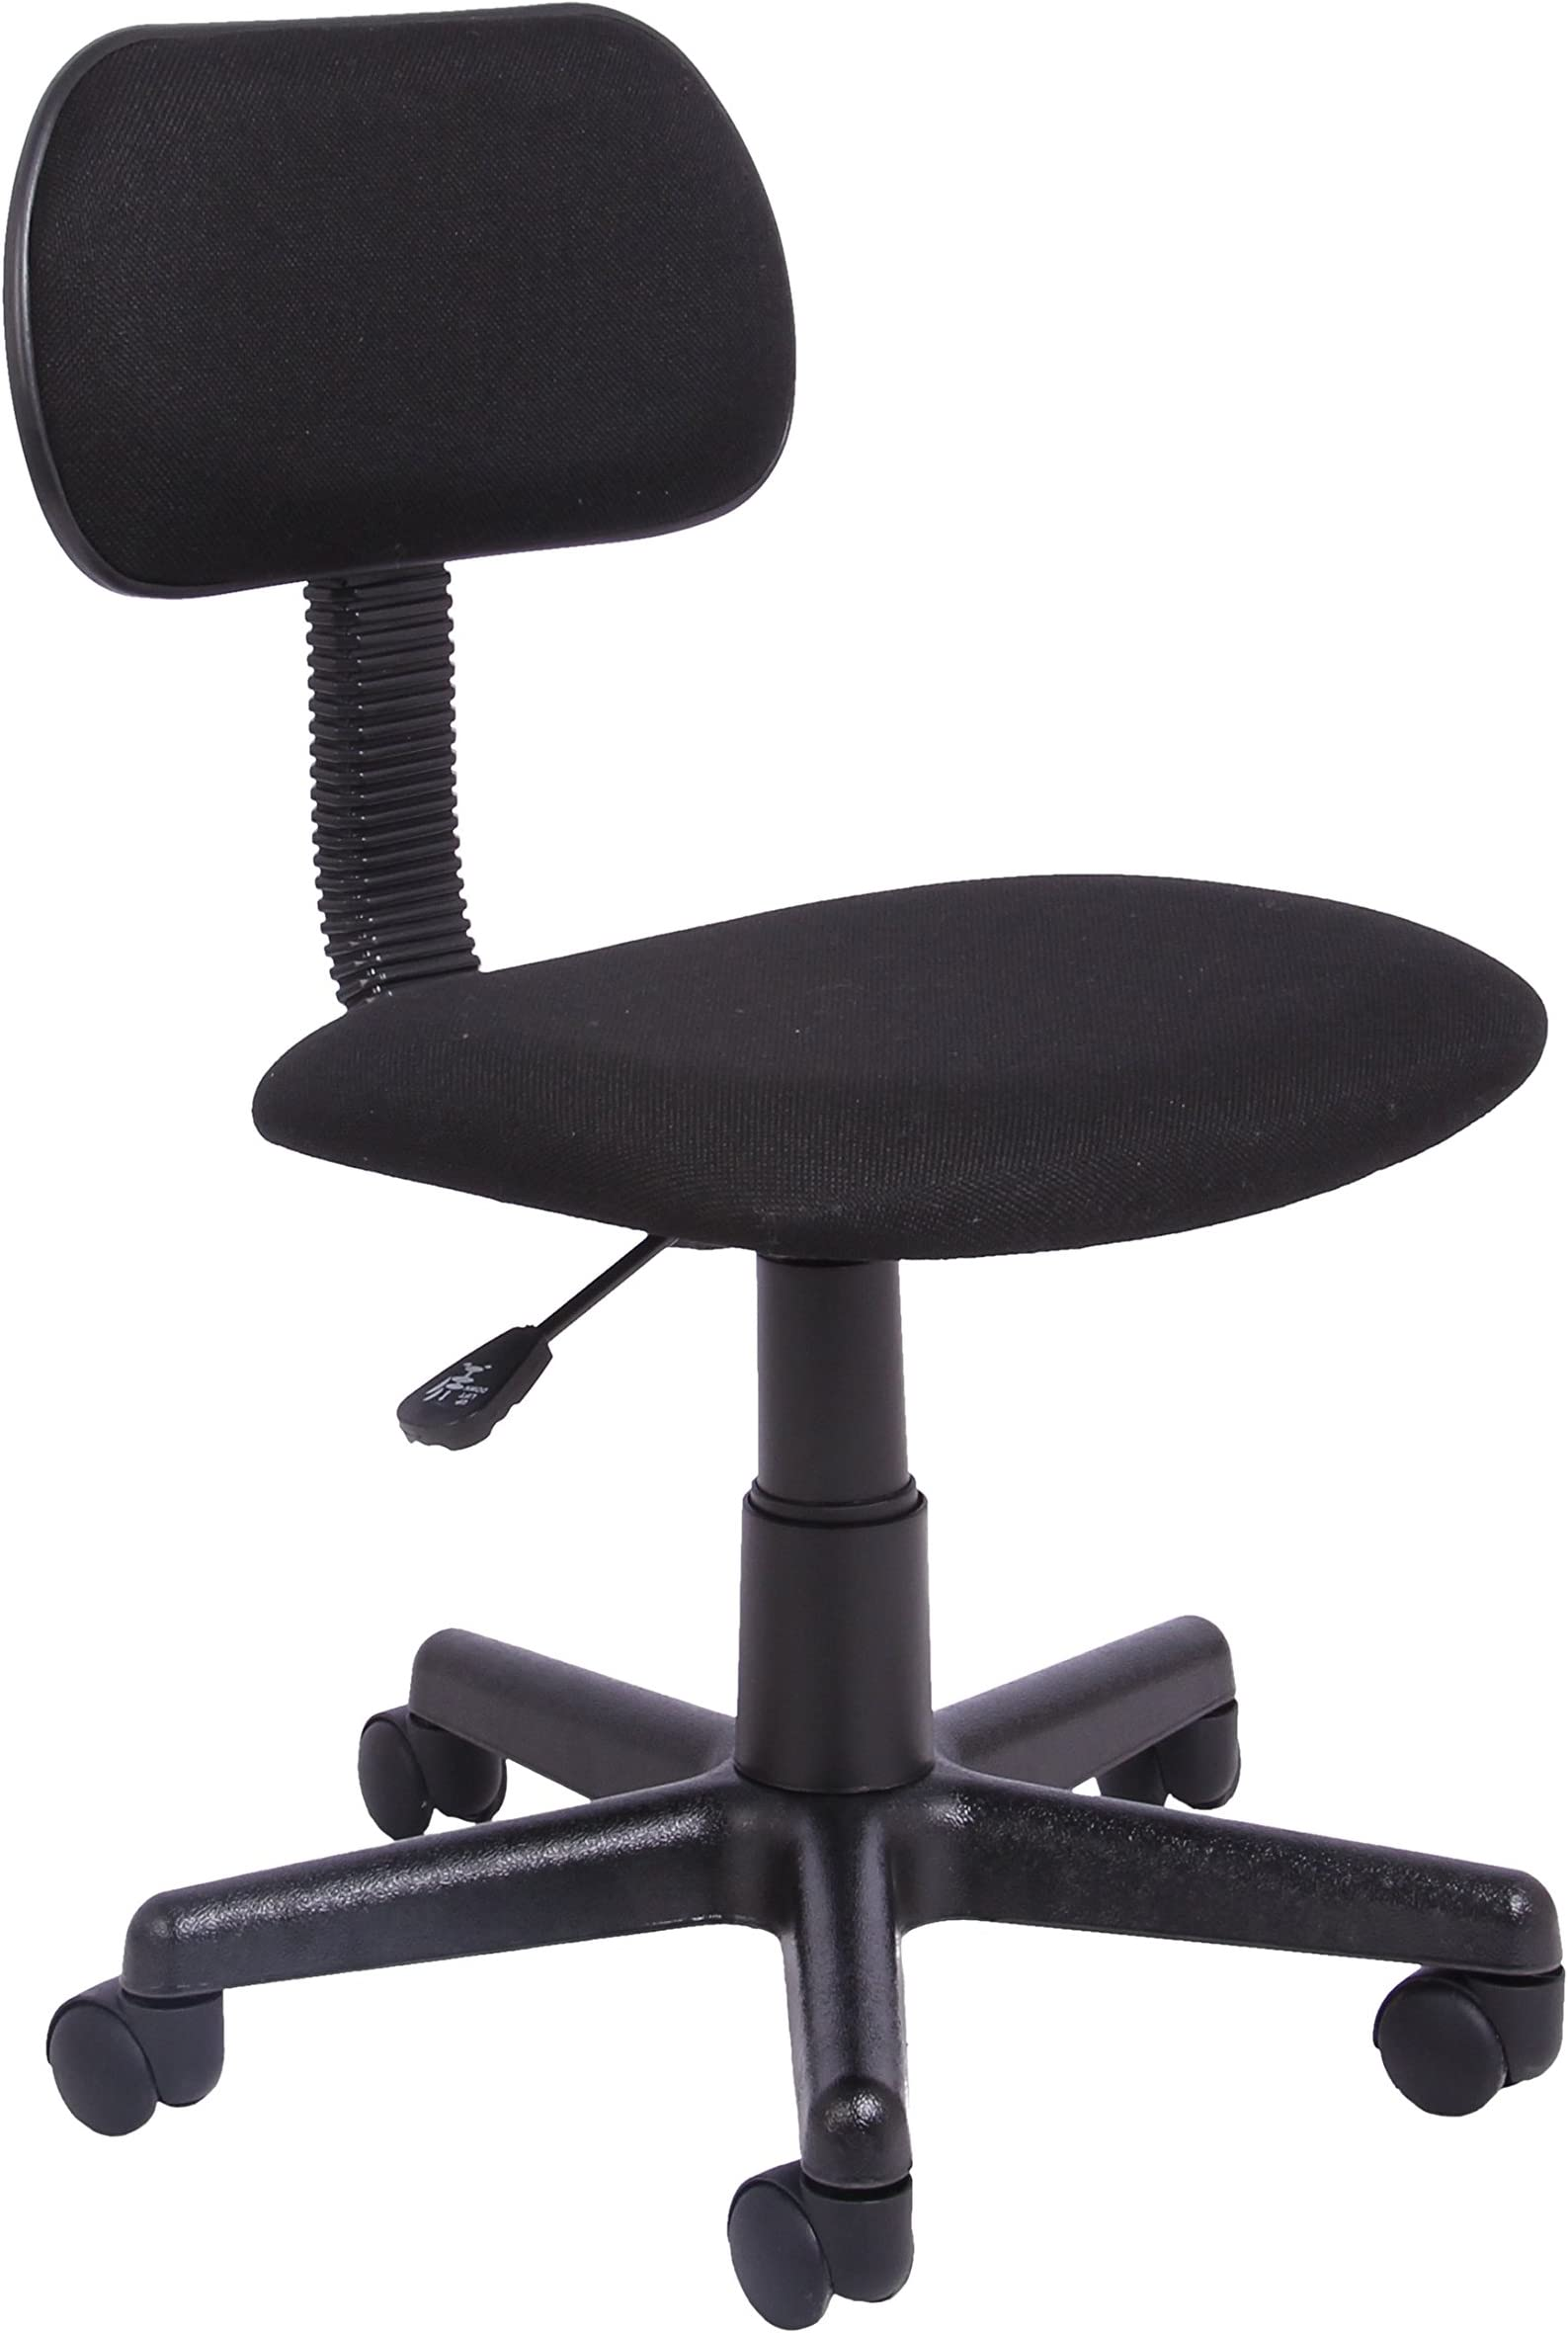 office chairs and computer chairs amazon uk rh amazon co uk amazon desk chair no wheels amazon desk chair mat